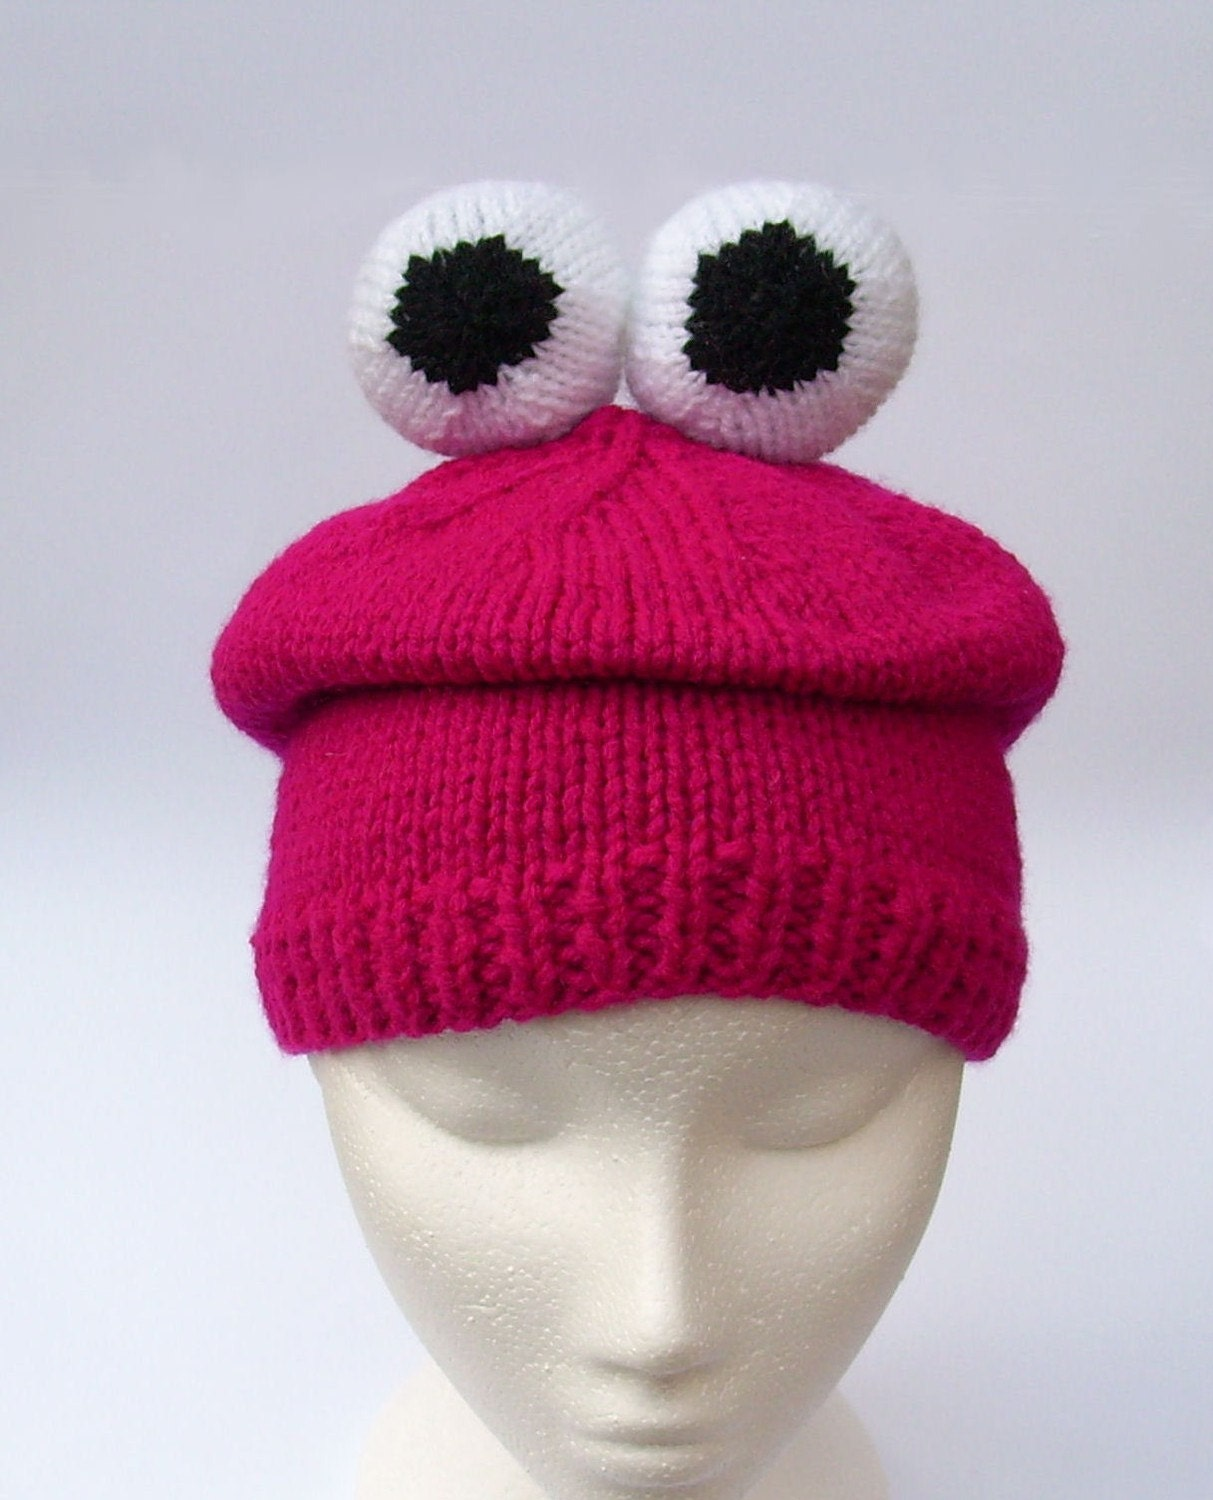 Monster beanie crazy hat unique unusual monster knit hats handmade critter beanie in deep pink with eyeballs